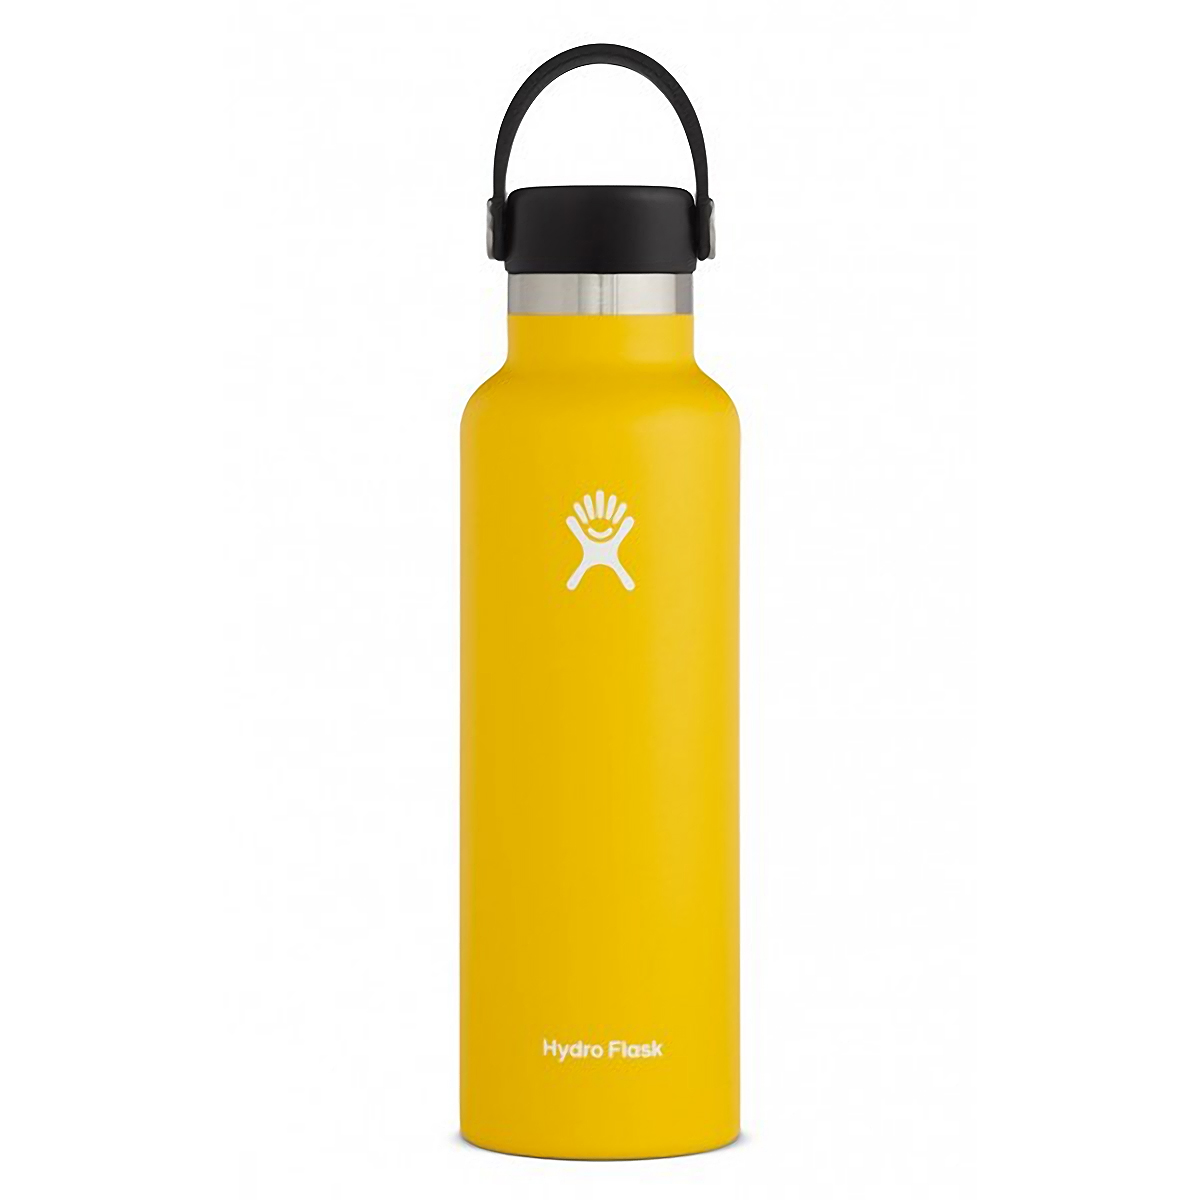 Hydro Flask 21 oz Standard Mouth Bottle - Color: Sunflower Size: One Size, Yellow, large, image 1